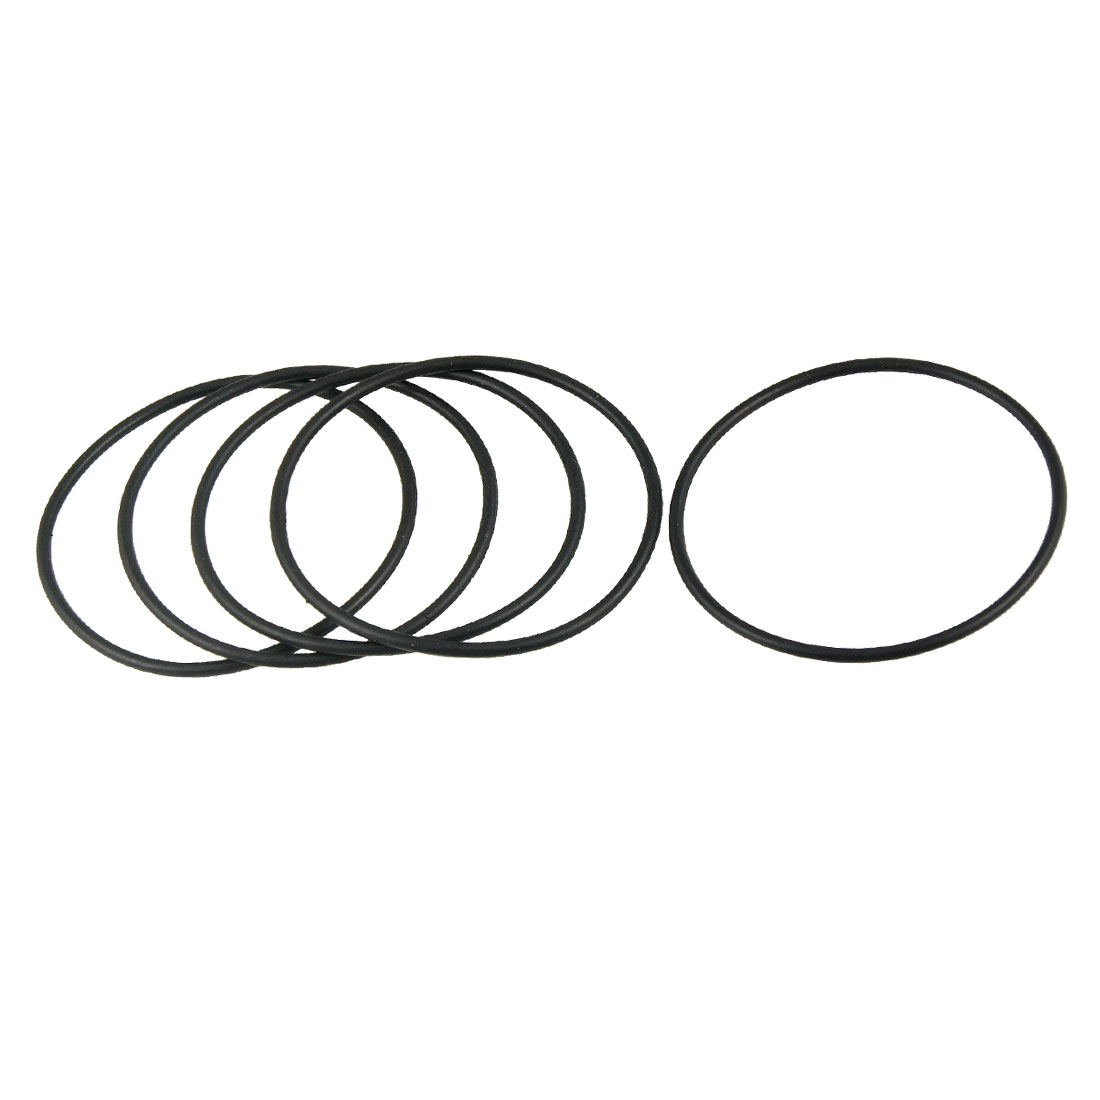 62mm x 2.4mm Flexible Rubber O Ring Sealing Washer Black 5 Pcs